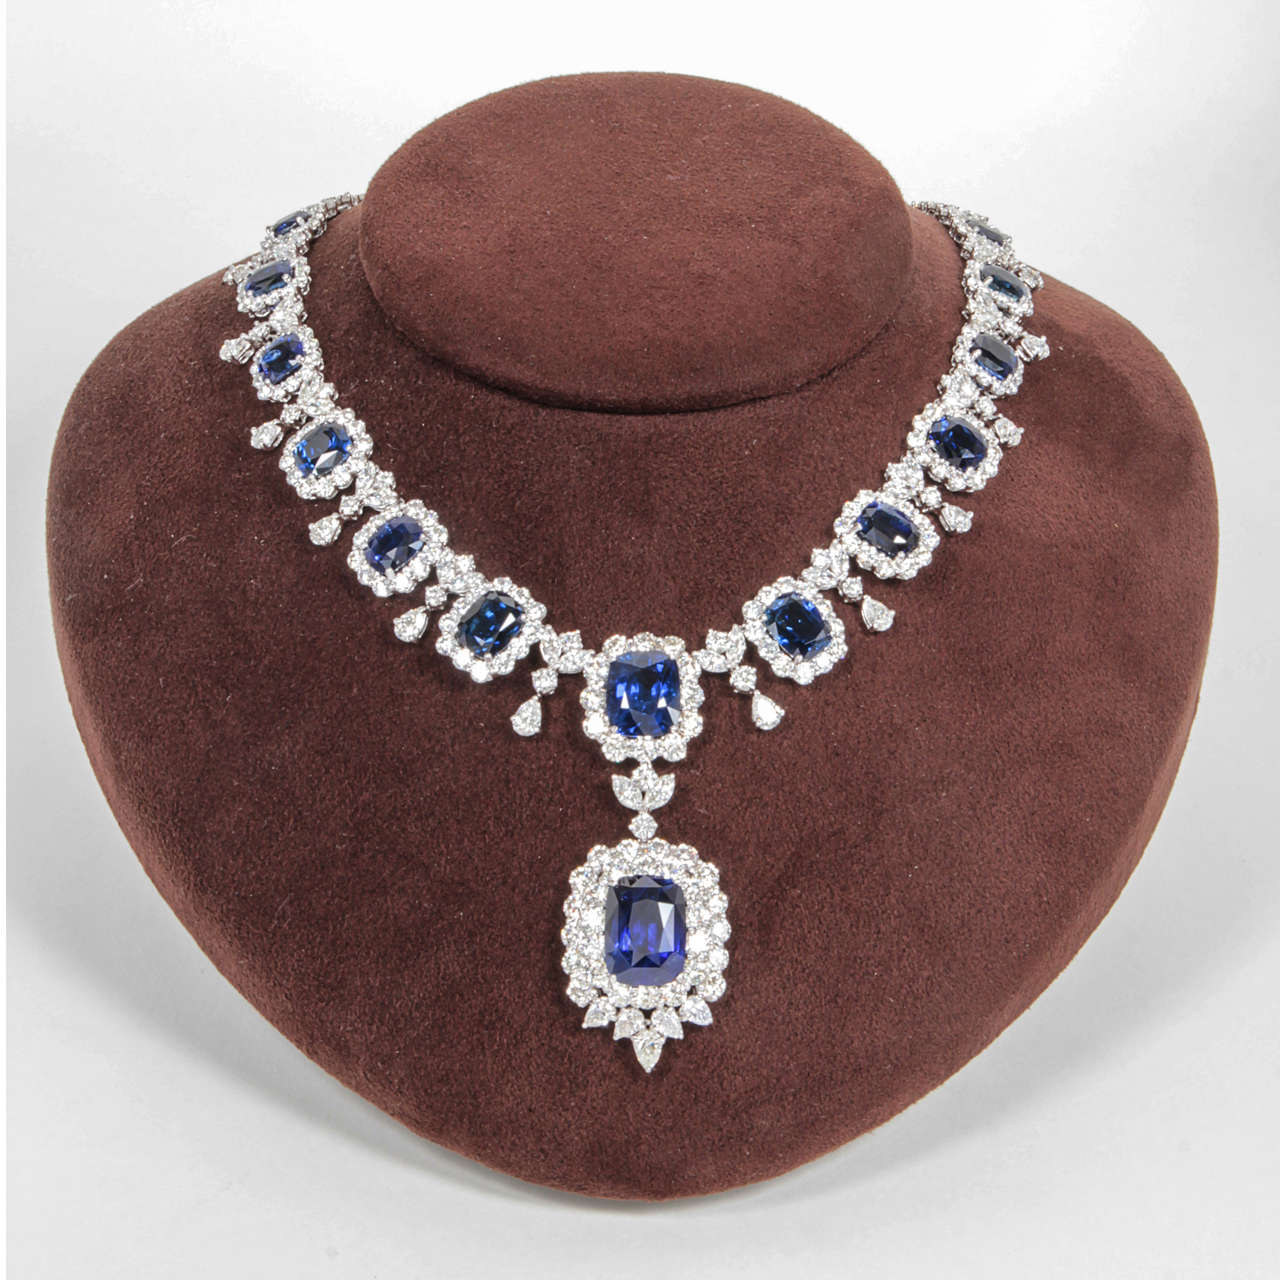 An incredible piece!  75.50 carats of beautiful cushion cut Ceylon sapphires.   17.48 carat cushion cut drop with GIA certificate.   45.13 carats of diamonds, all set in platinum.  Made in New York